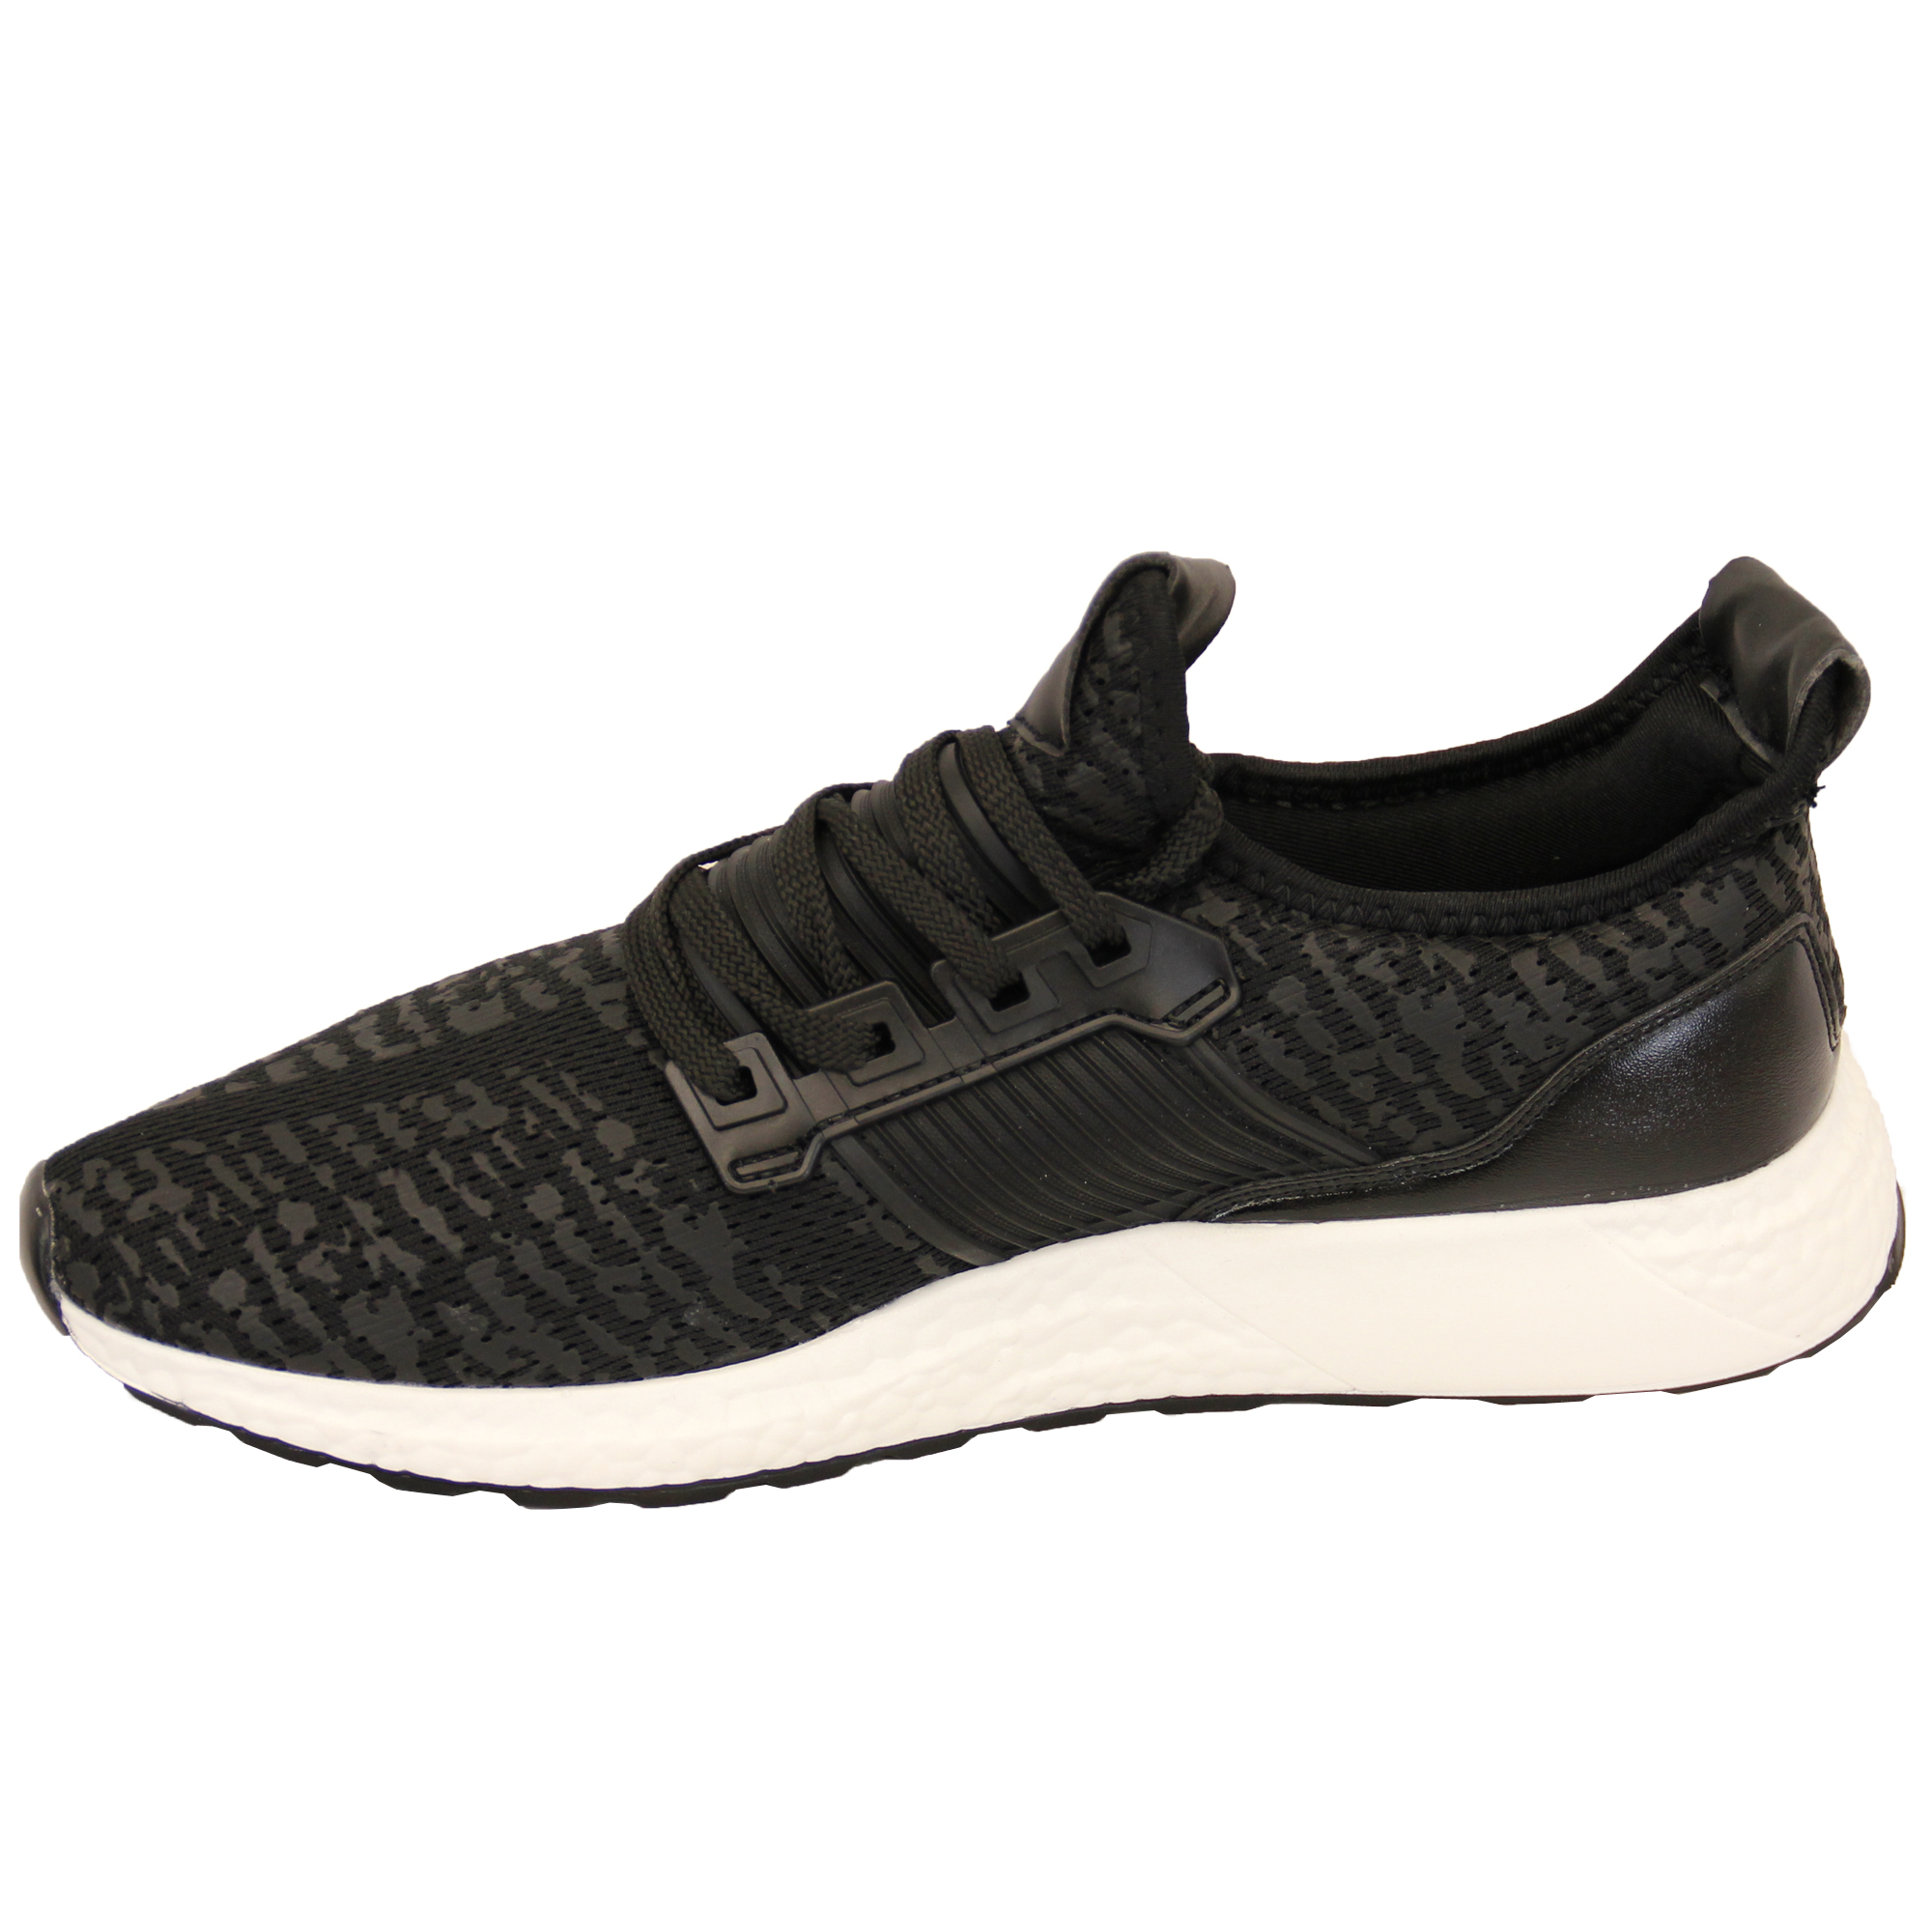 Baskets Homme Chaussures à Lacets Running Gym Sport Mesh Casual Summer Fashion New